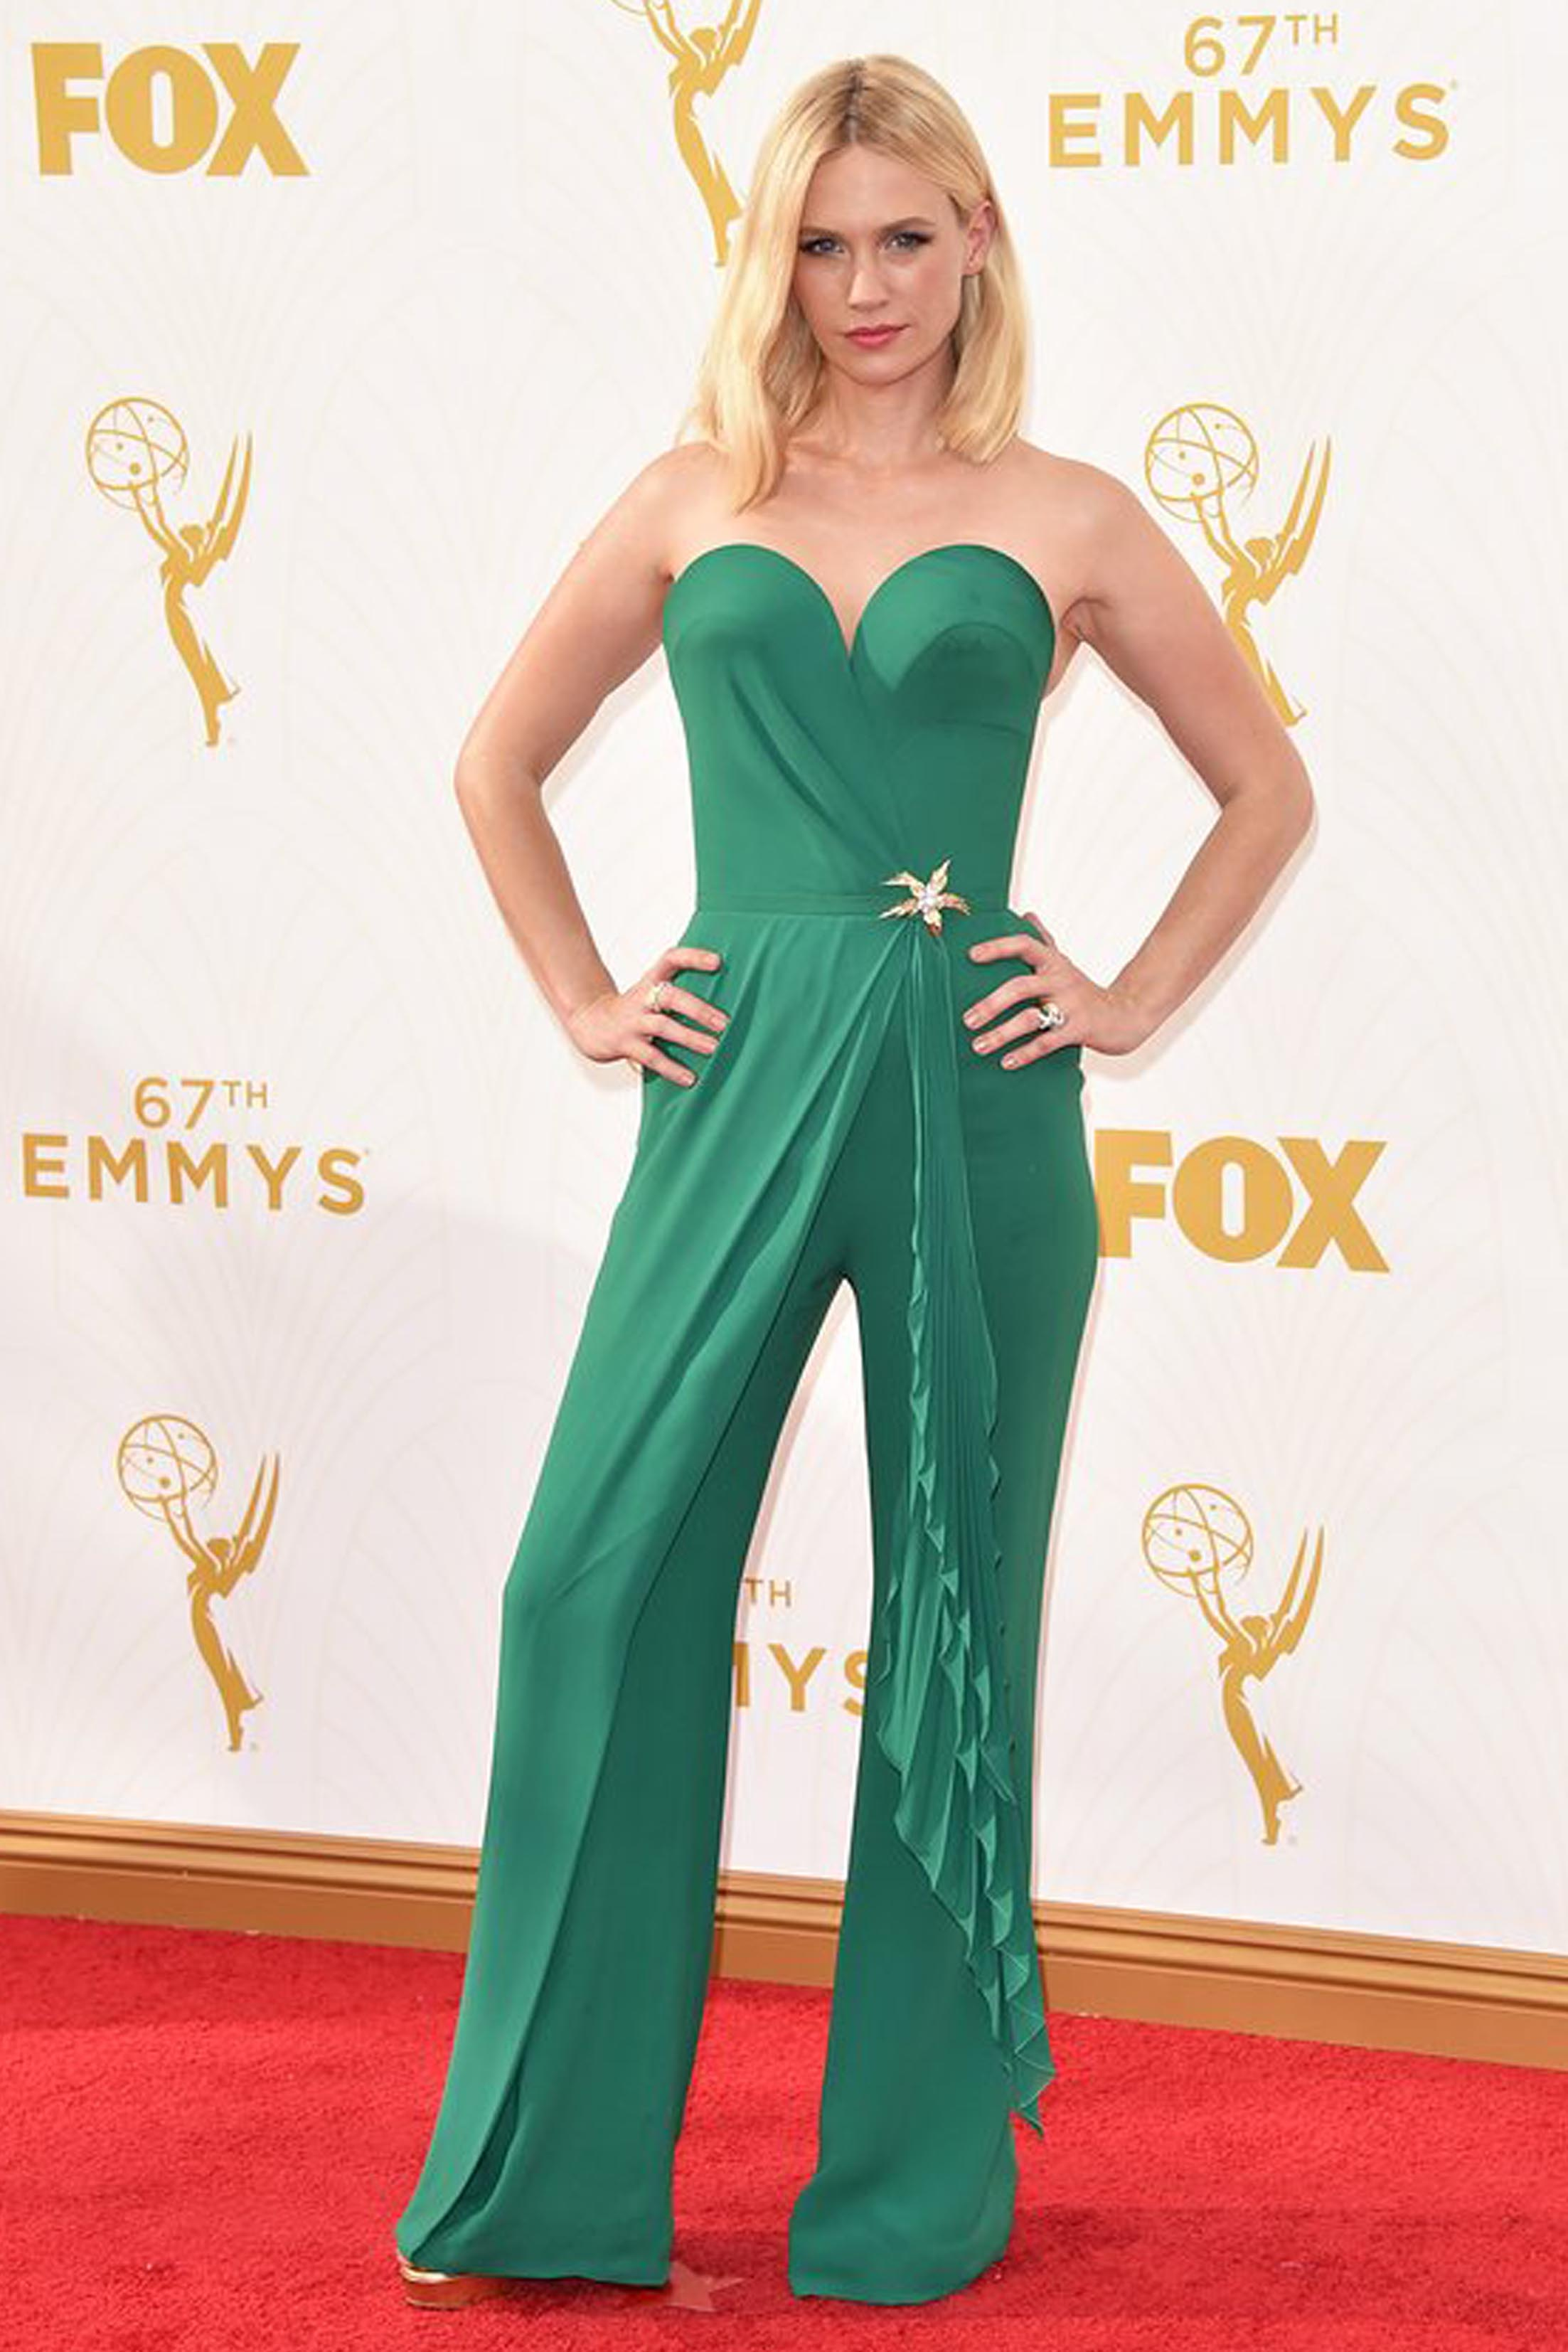 EMMYS 2015 – 15 Looks from the Red Carpet from Best to Worst ...